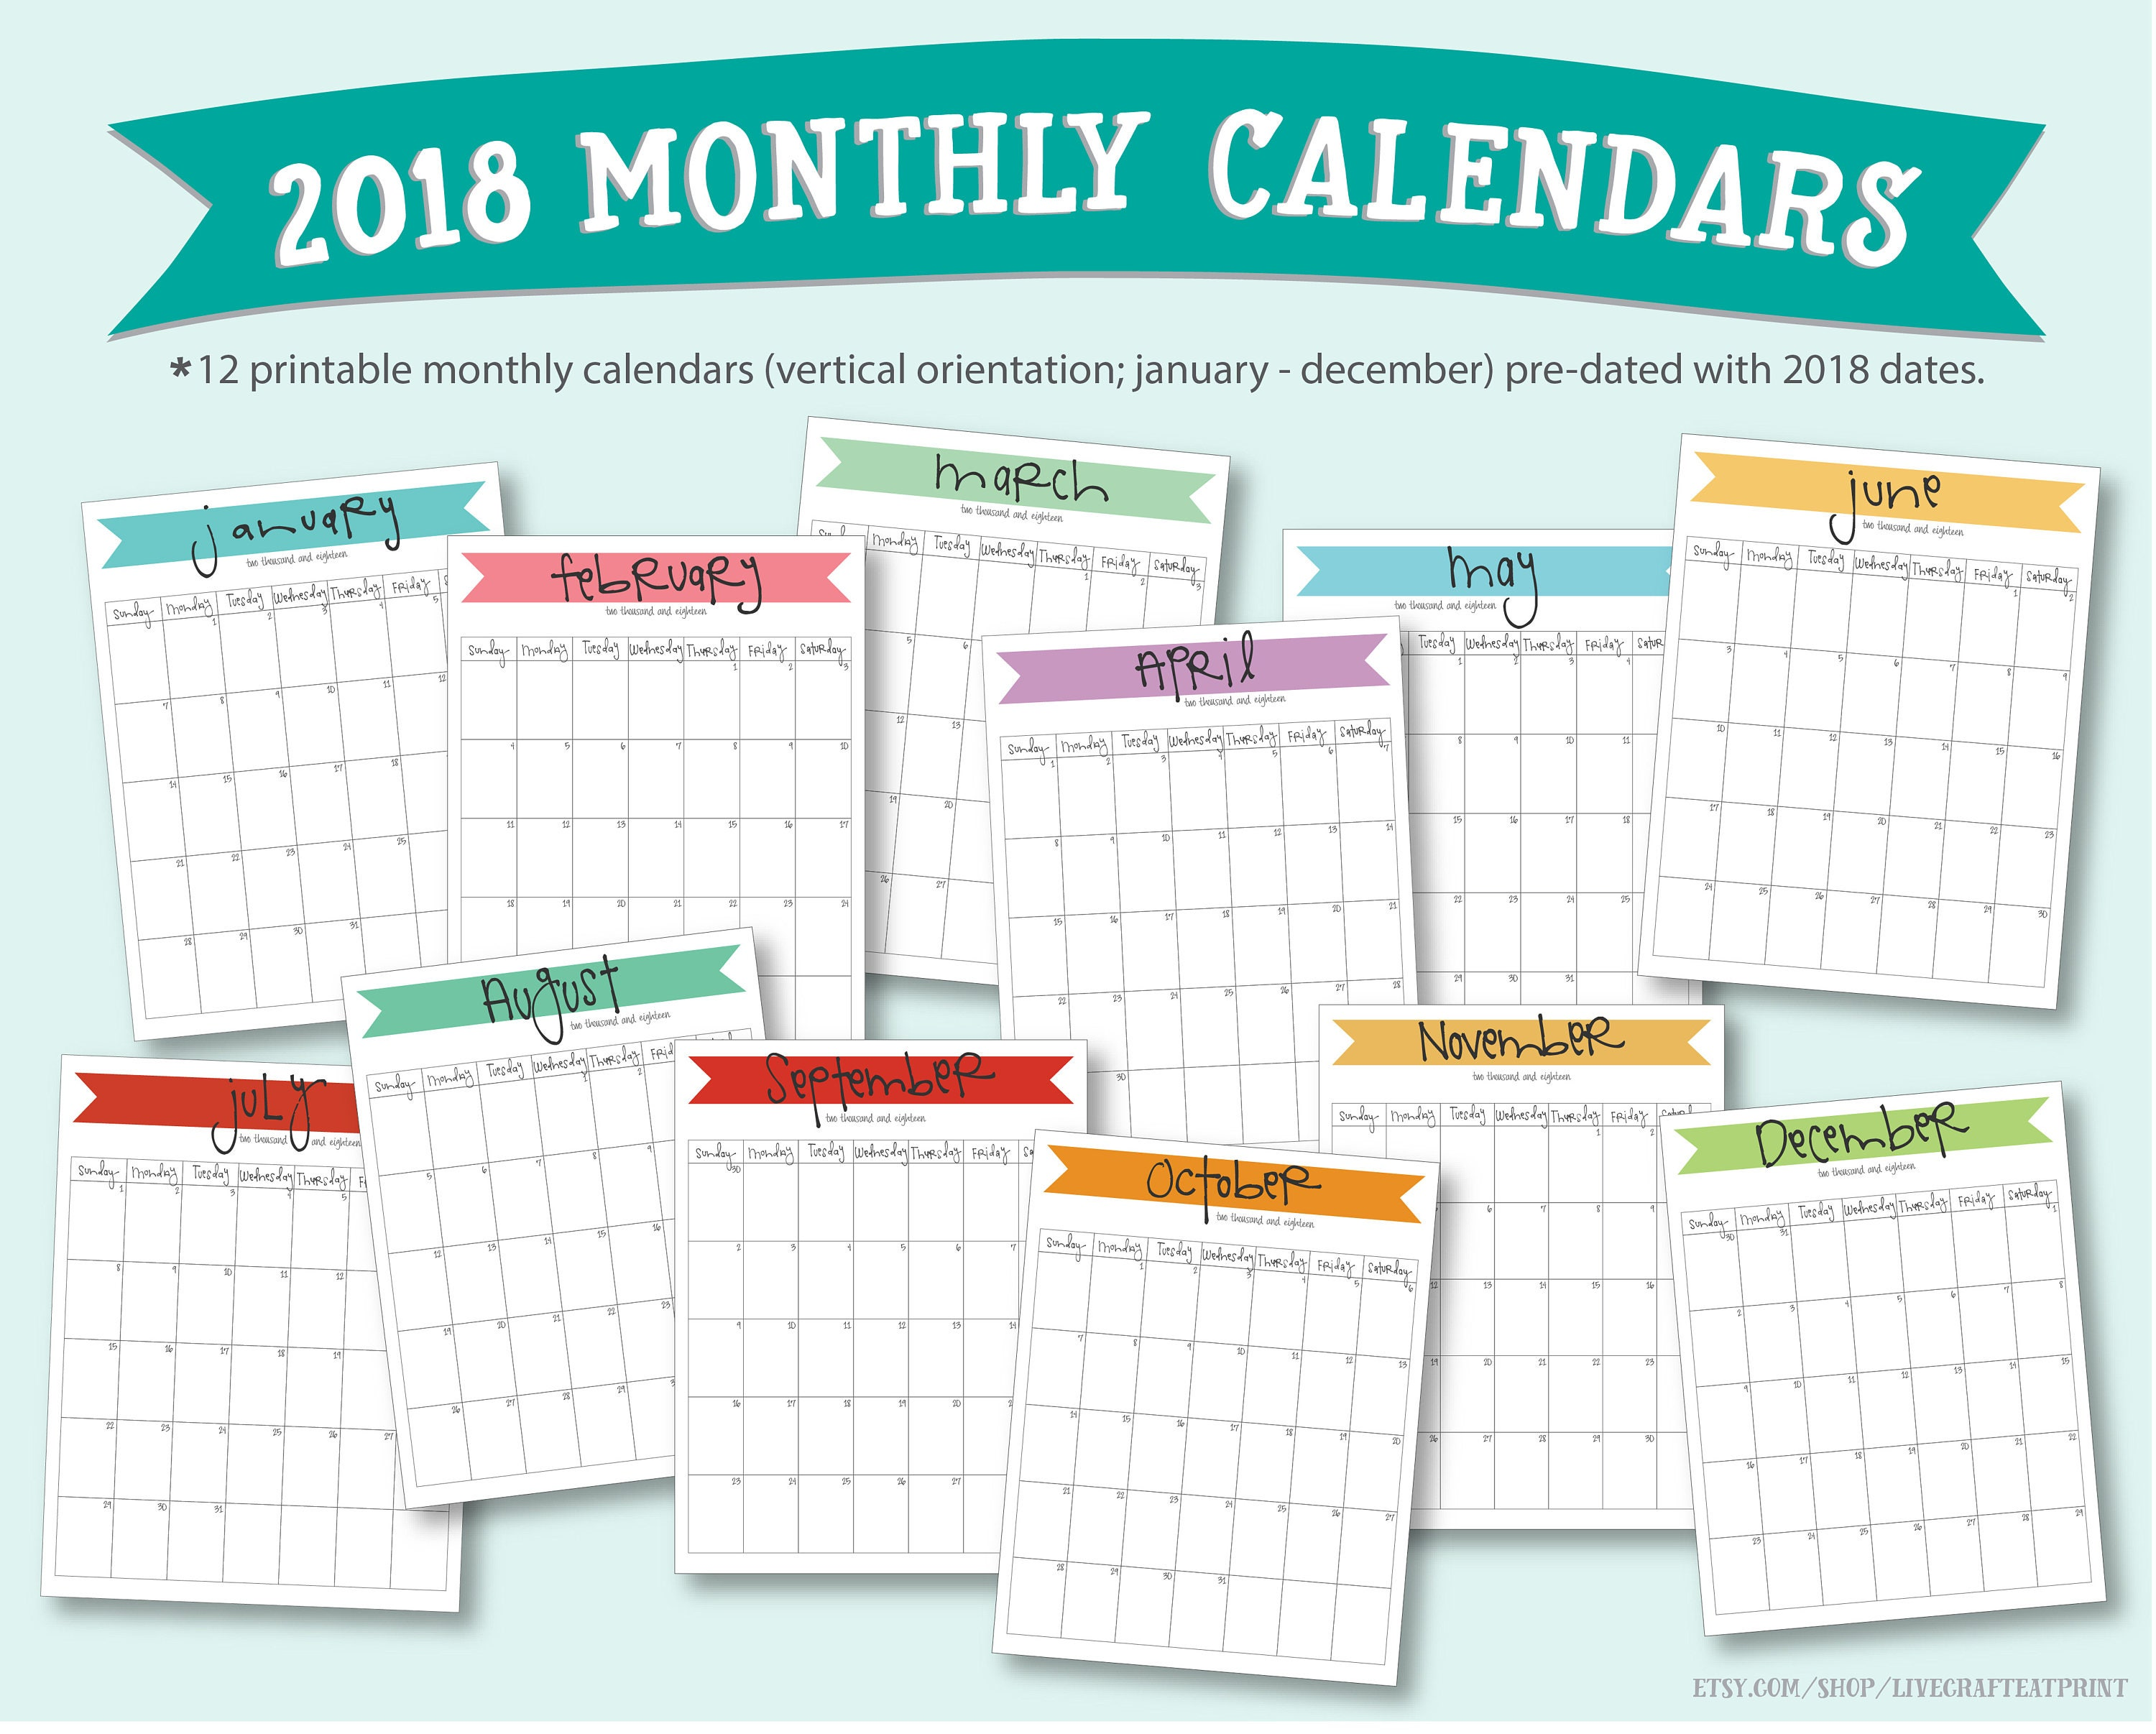 Calendar Vertical List : Printable monthly calendars portrait vertical